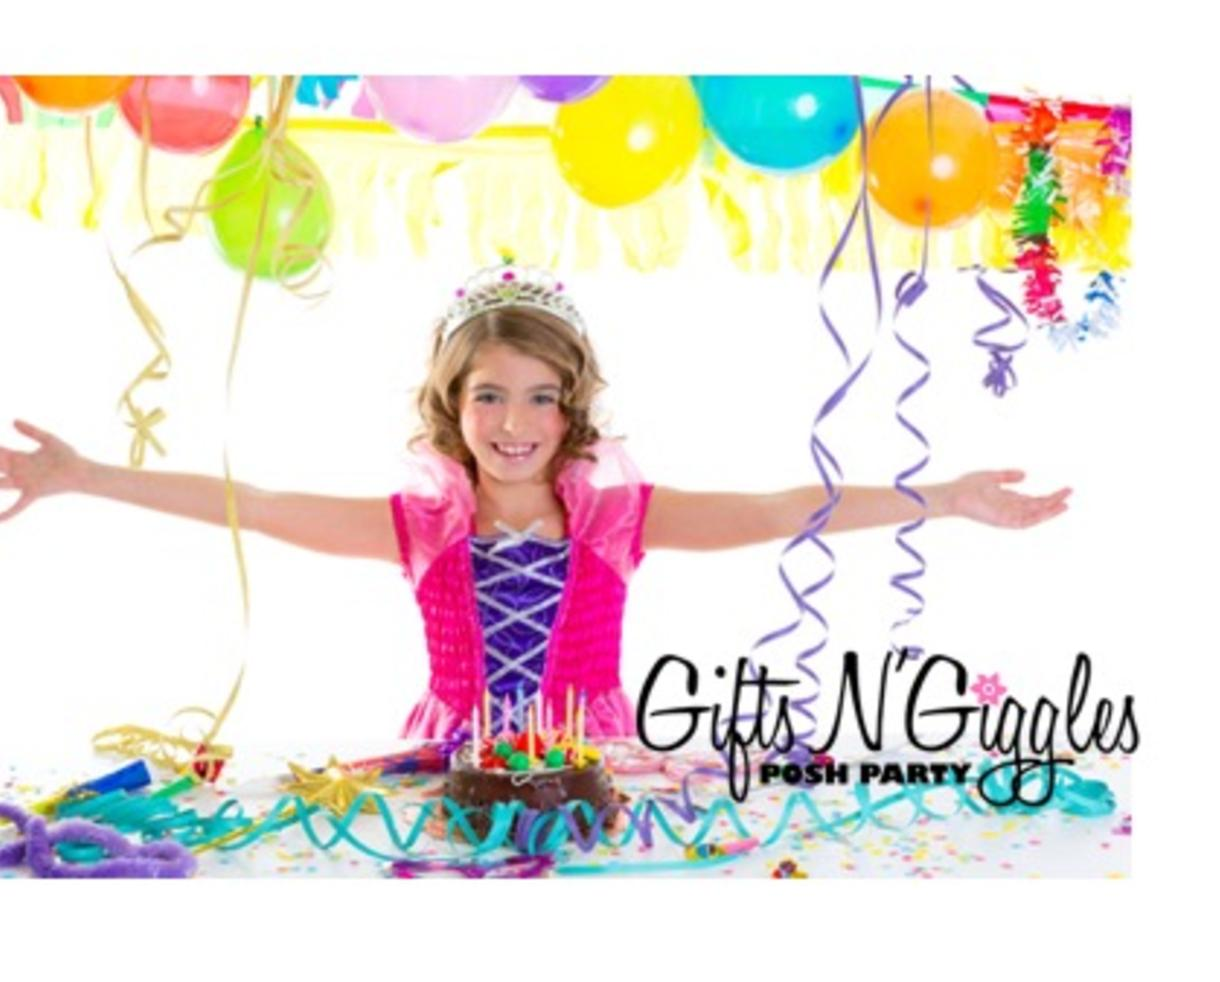 $350 for 2 Hour Party for Up to 8 Guests with Gifts N' Giggles – The Party Comes to You! ($500 Value - 31% Off)